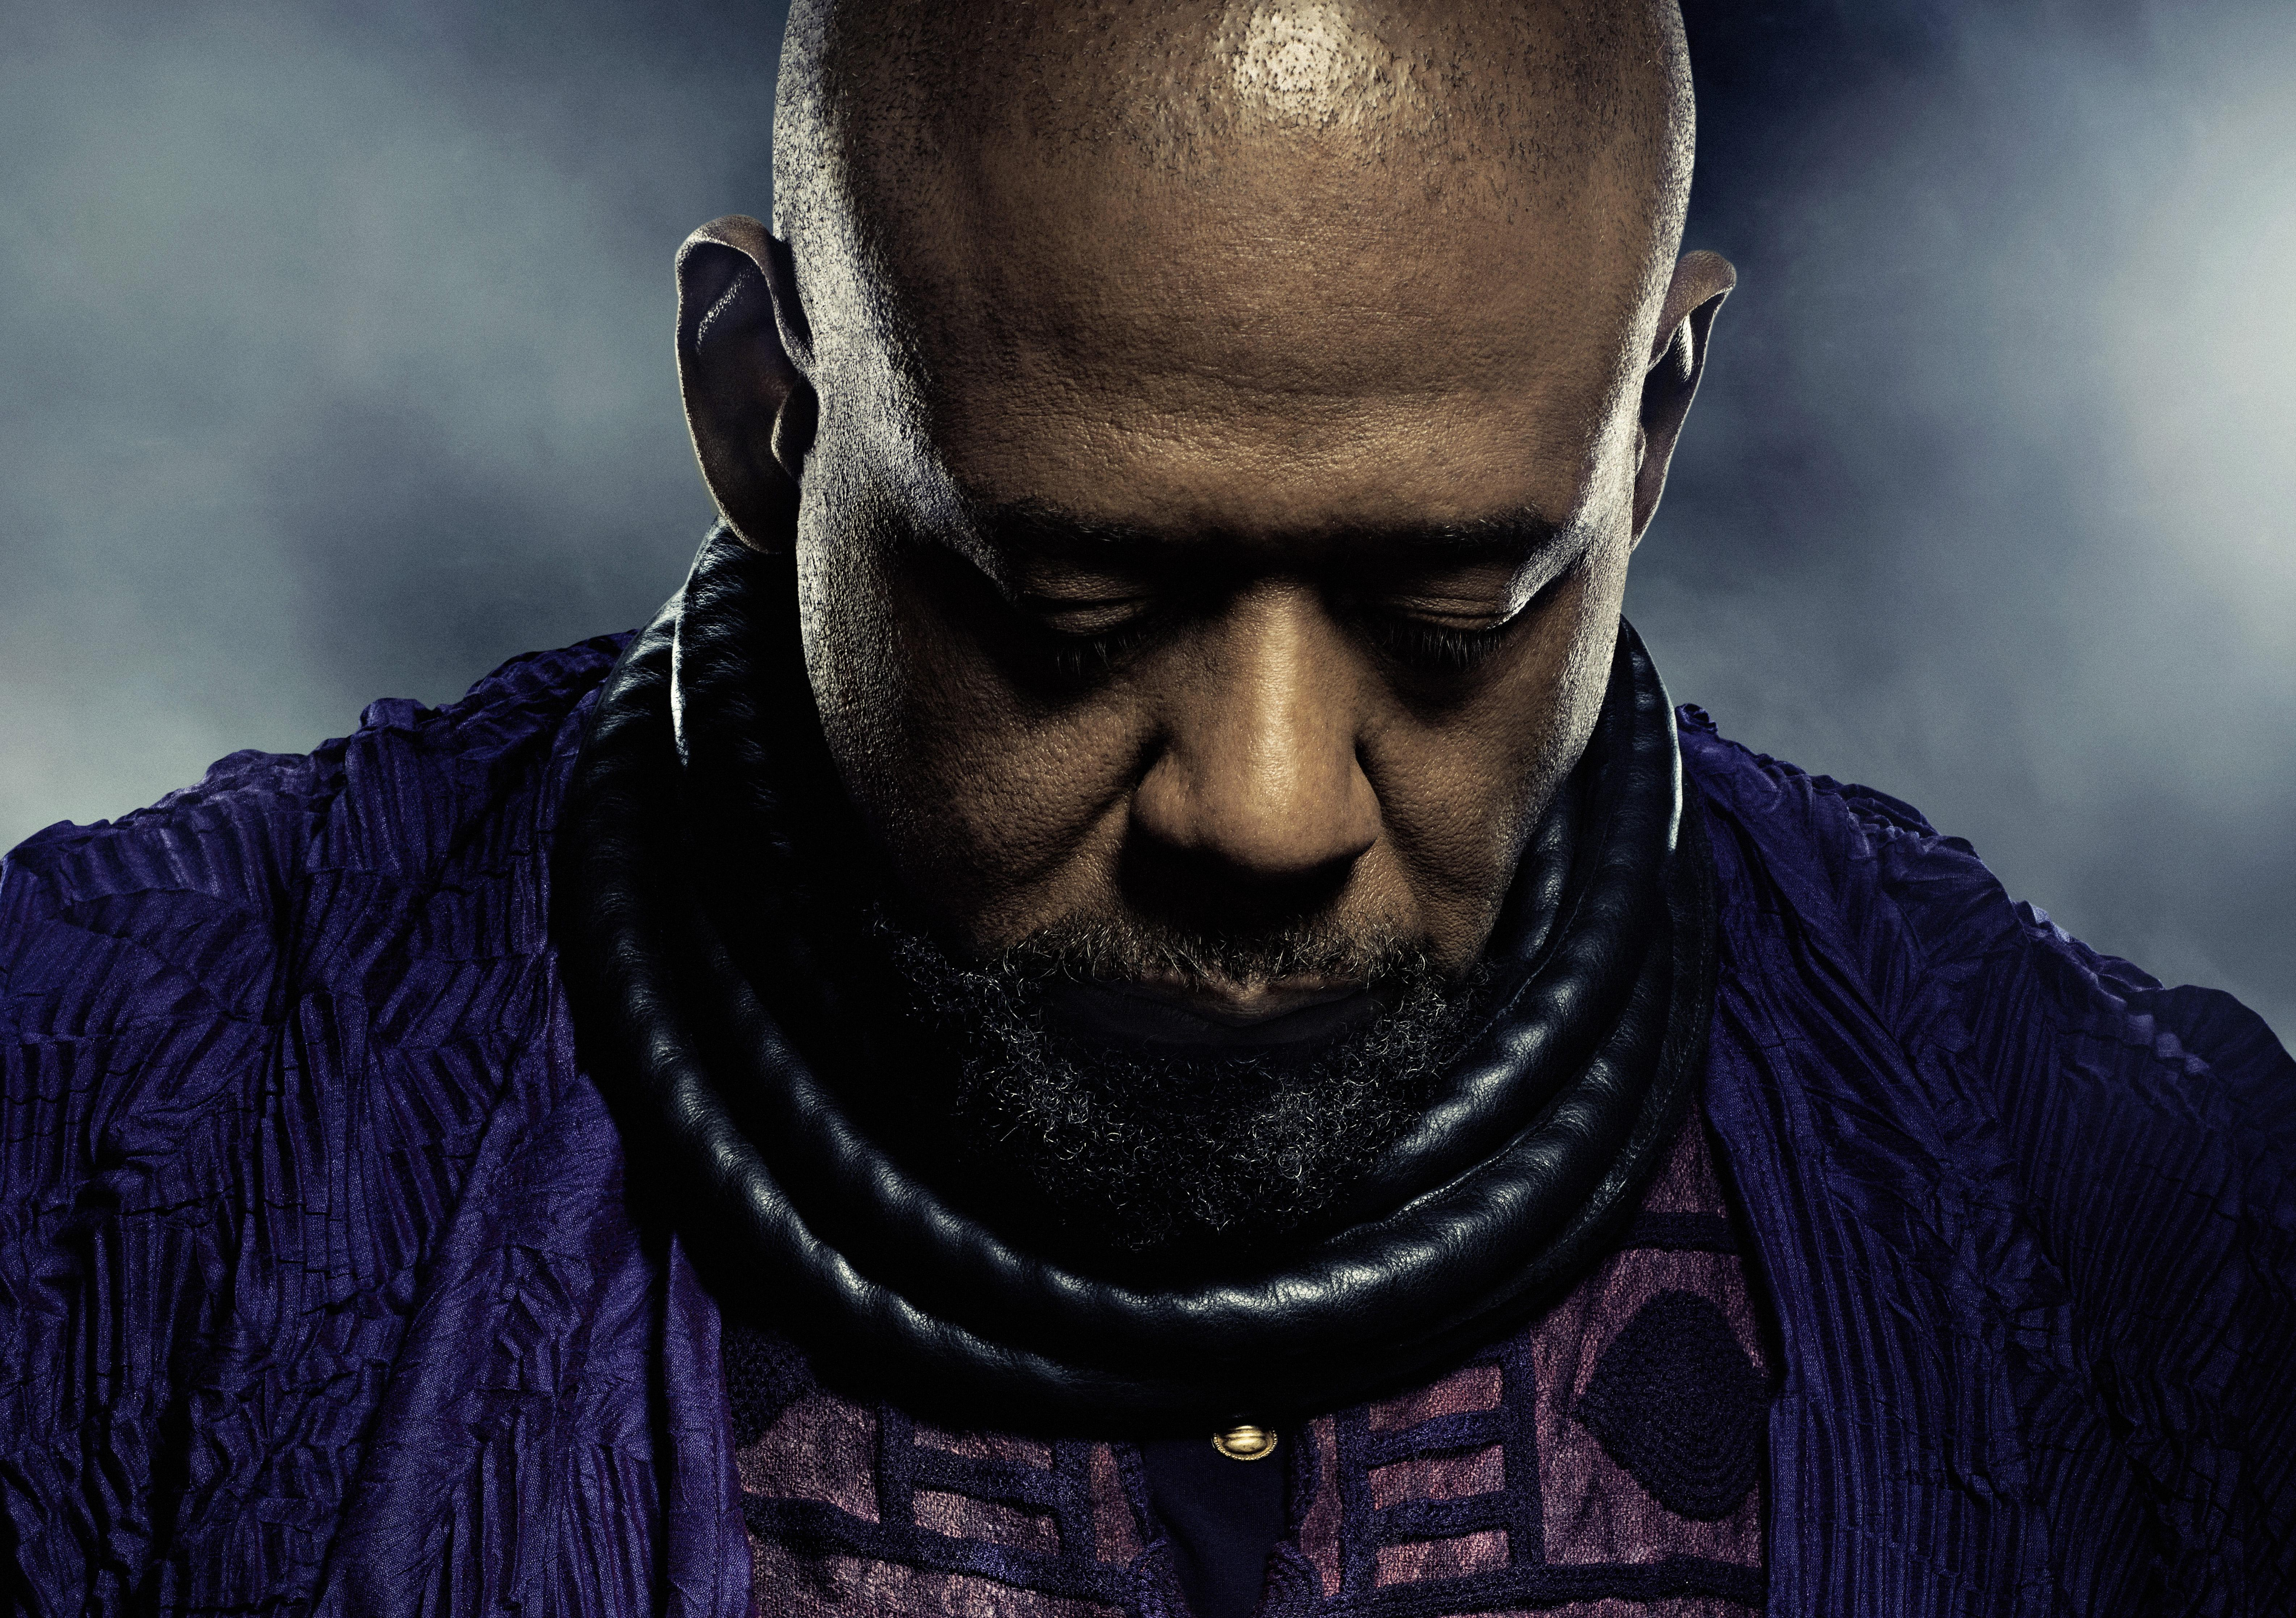 Forest Whitaker In Black Panther Poster 5k, HD Movies, 4k Wallpapers ...